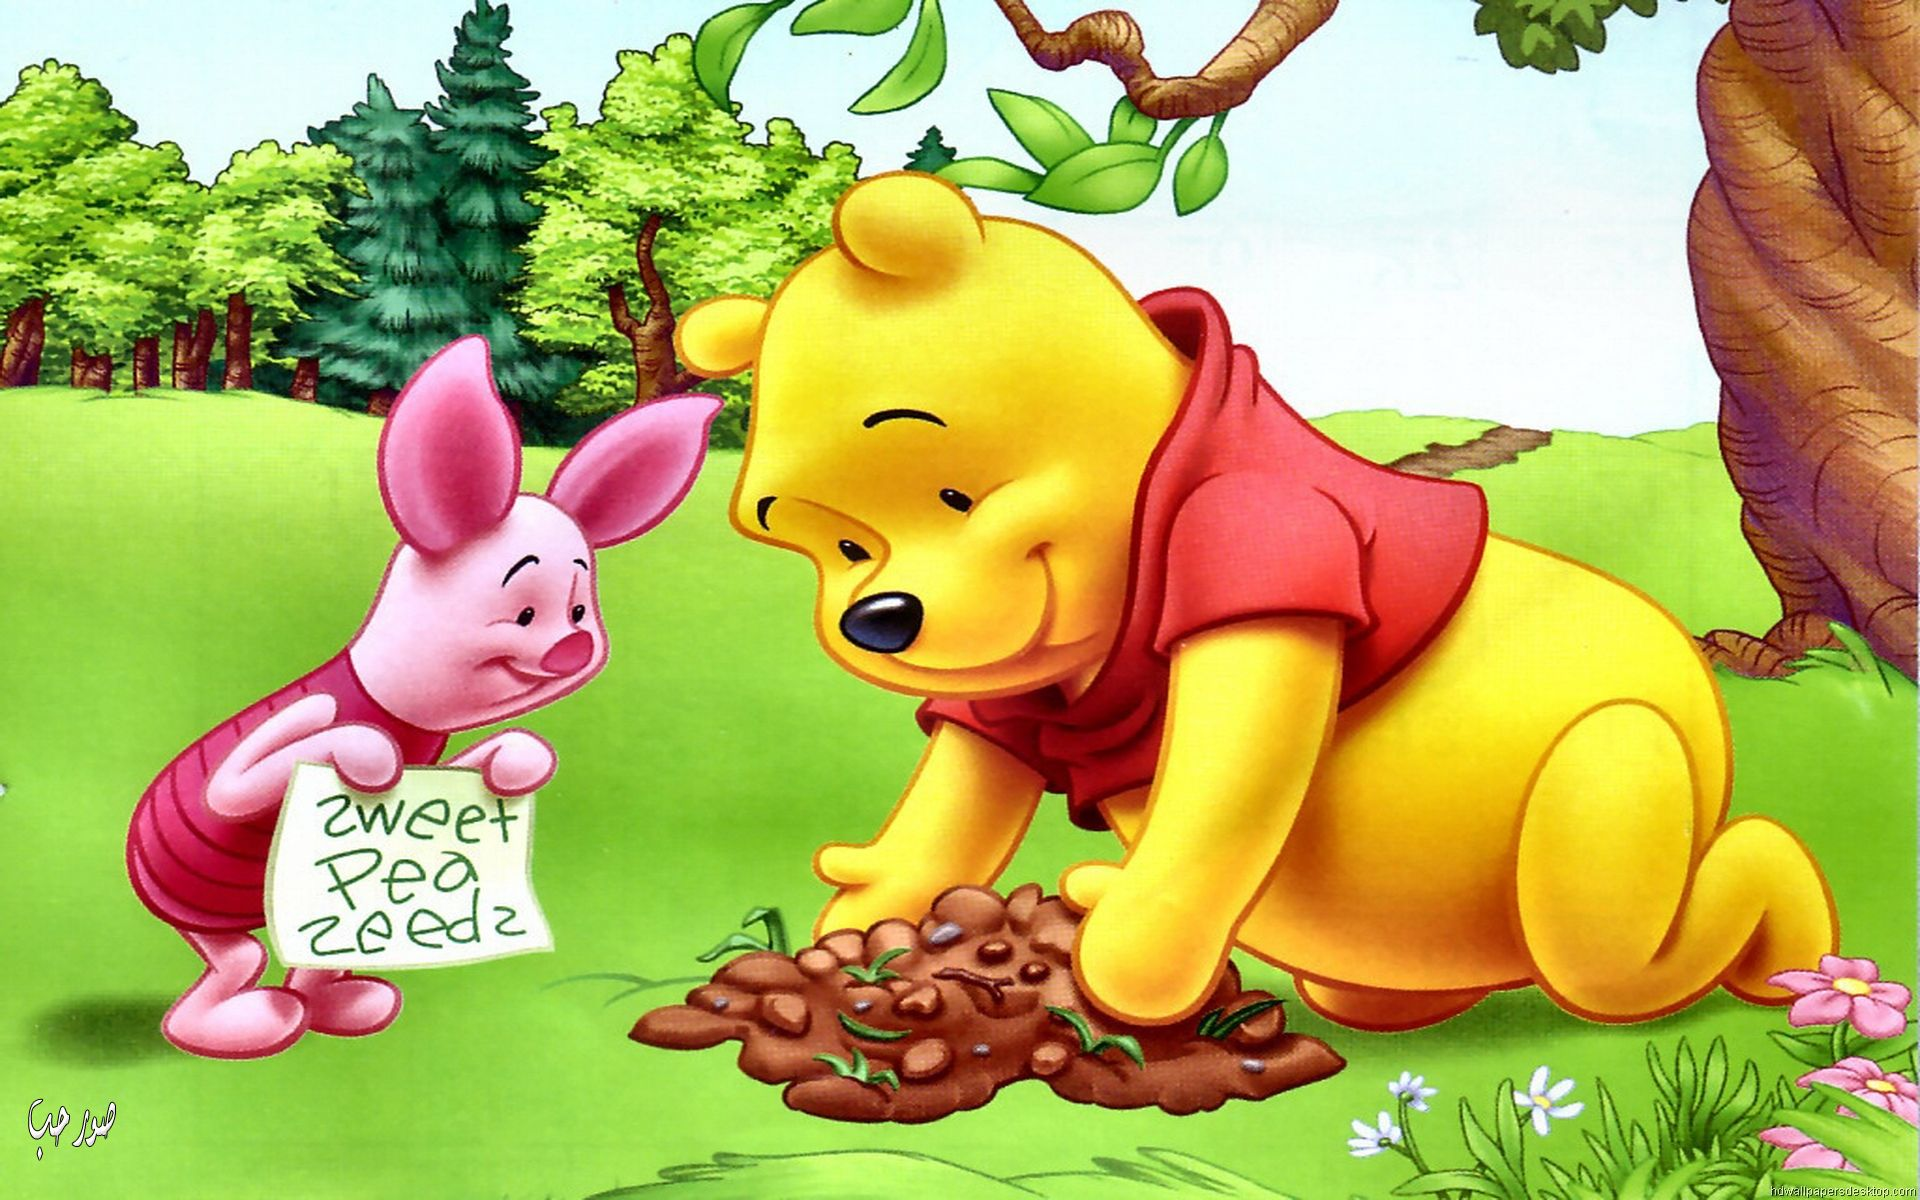 Piglet Wallpaper Iphone Piglet And Winnie The Pooh Planting Flowers Hd Wallpapers